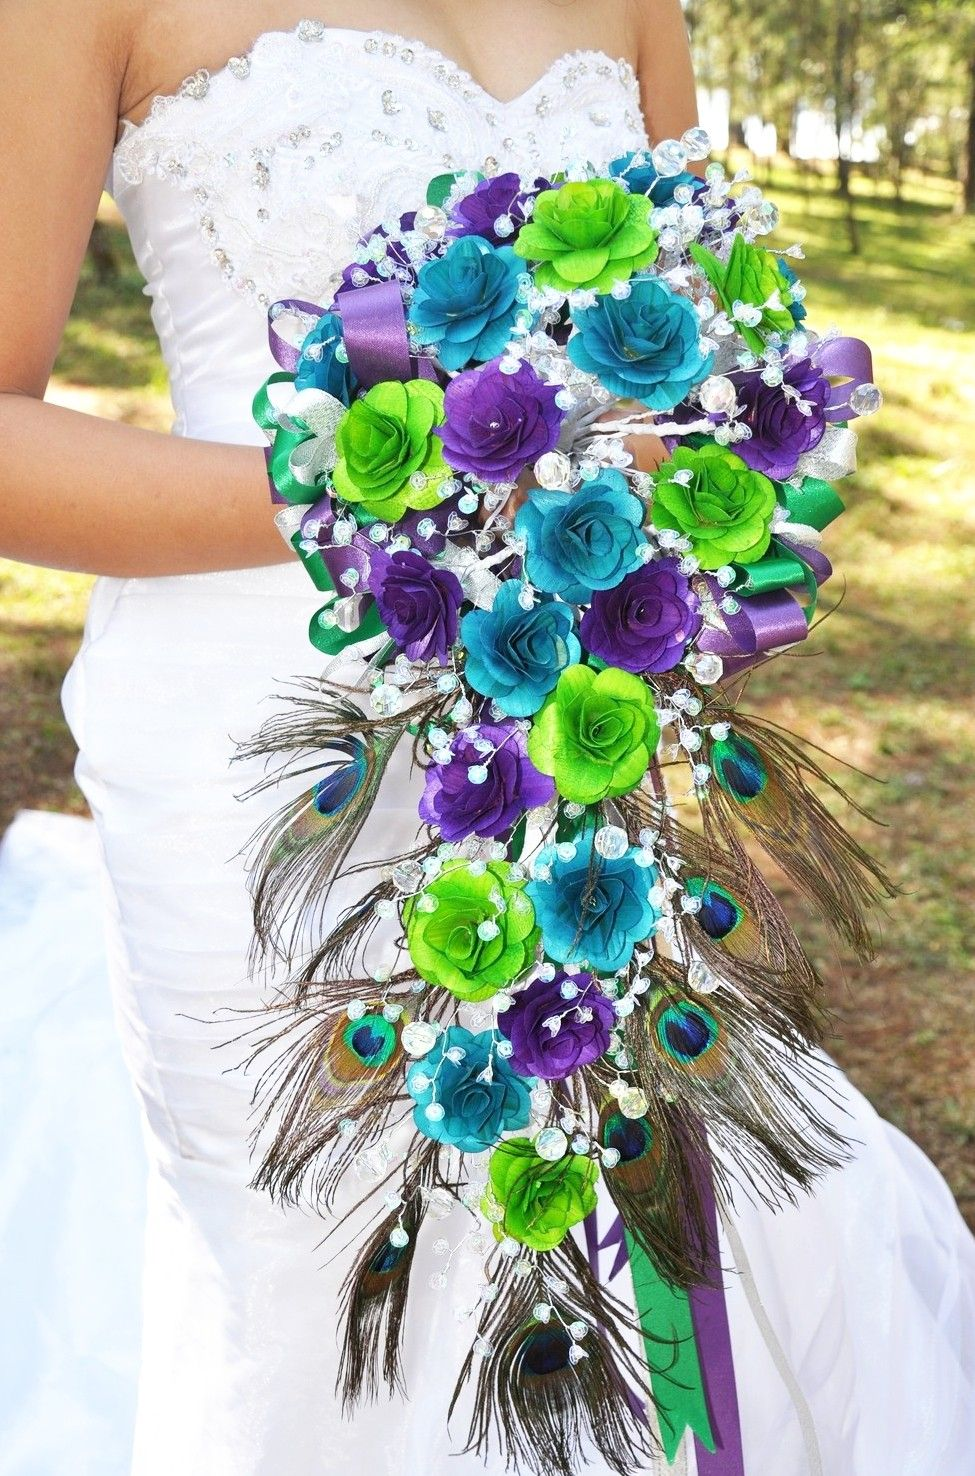 Wedding dresses with purple accents  Peacock Bridal Bouquet  Peacock Blue Green Purple Bouquet  ACCENTS